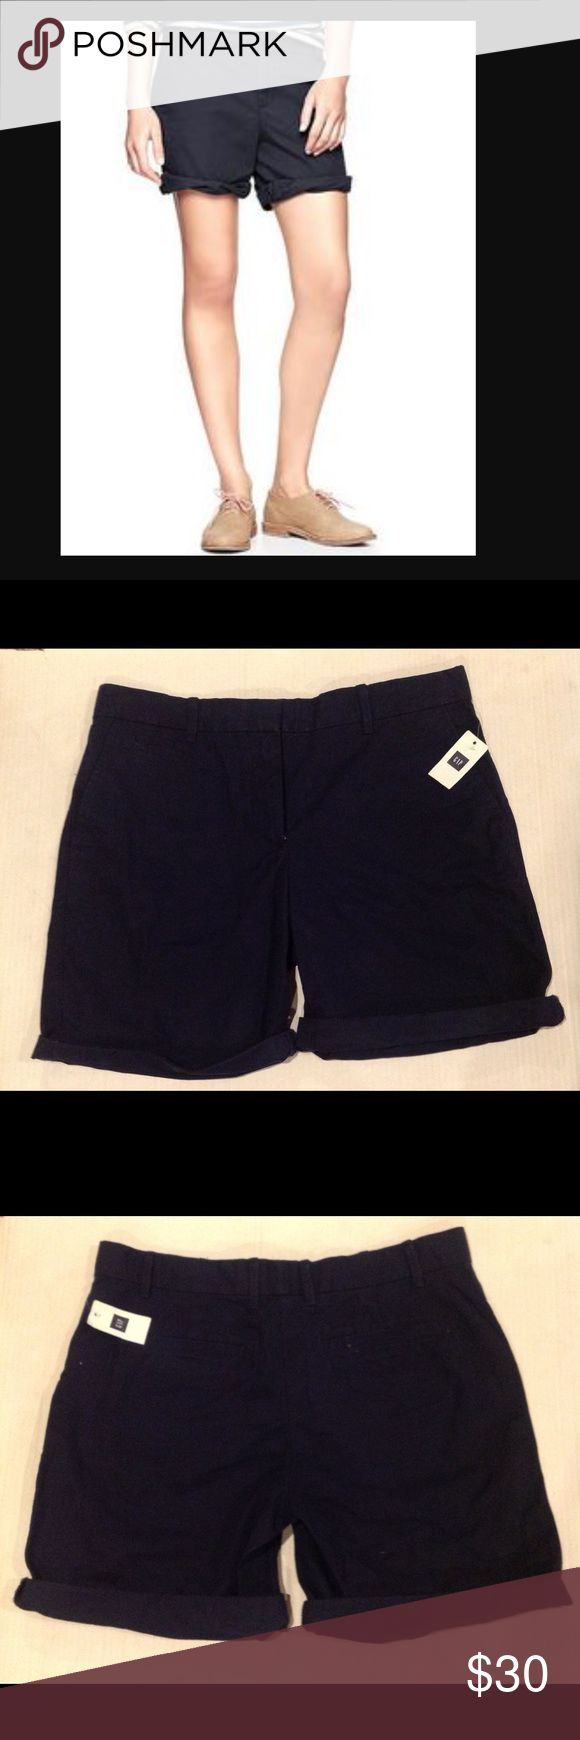 🆕GAP WOMEN'S  BOYFRIEND ROLL UP KHALIS  (Sz 4P) Gap women's boyfriend roll - up khakis . It has roll up style . It has 2 pockets and a small side pocket  and 2 back pockets. Zipper fly.  THE SIZE IS 4 Petite. The material is 100 % cotton. BRAND NEW WITH TAG. GAP Shorts